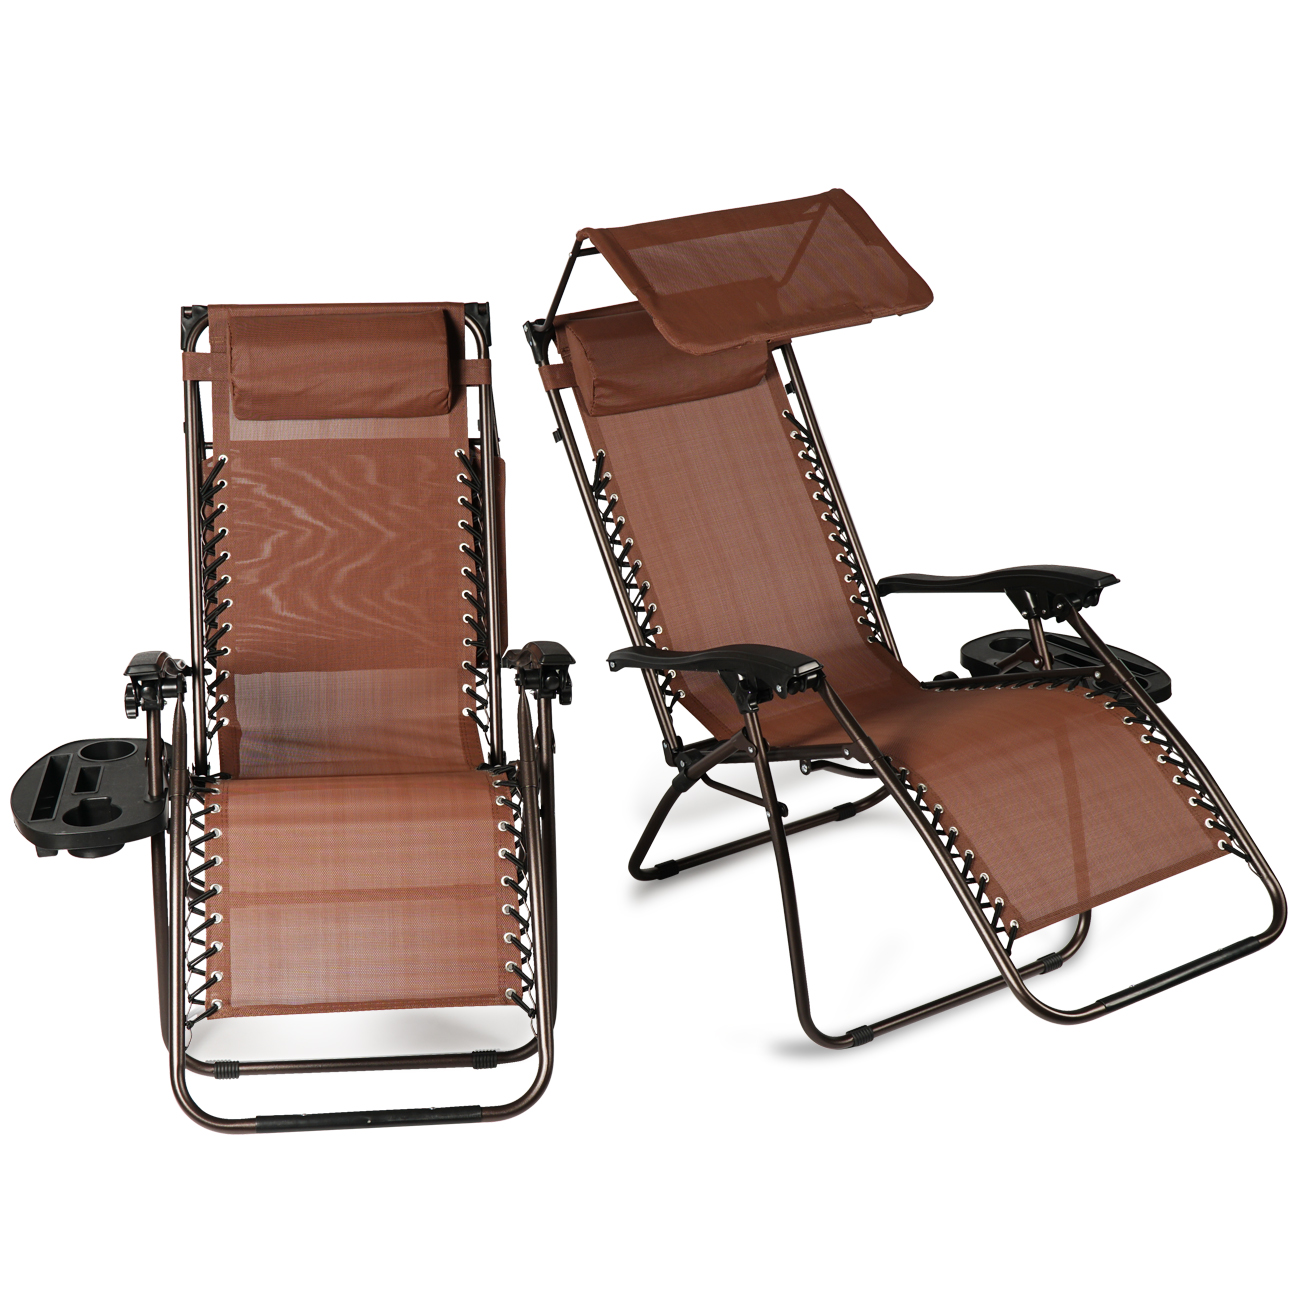 patio folding chair covers for protection 2 pcs zero gravity lounge w canopy cup holder chairs brown